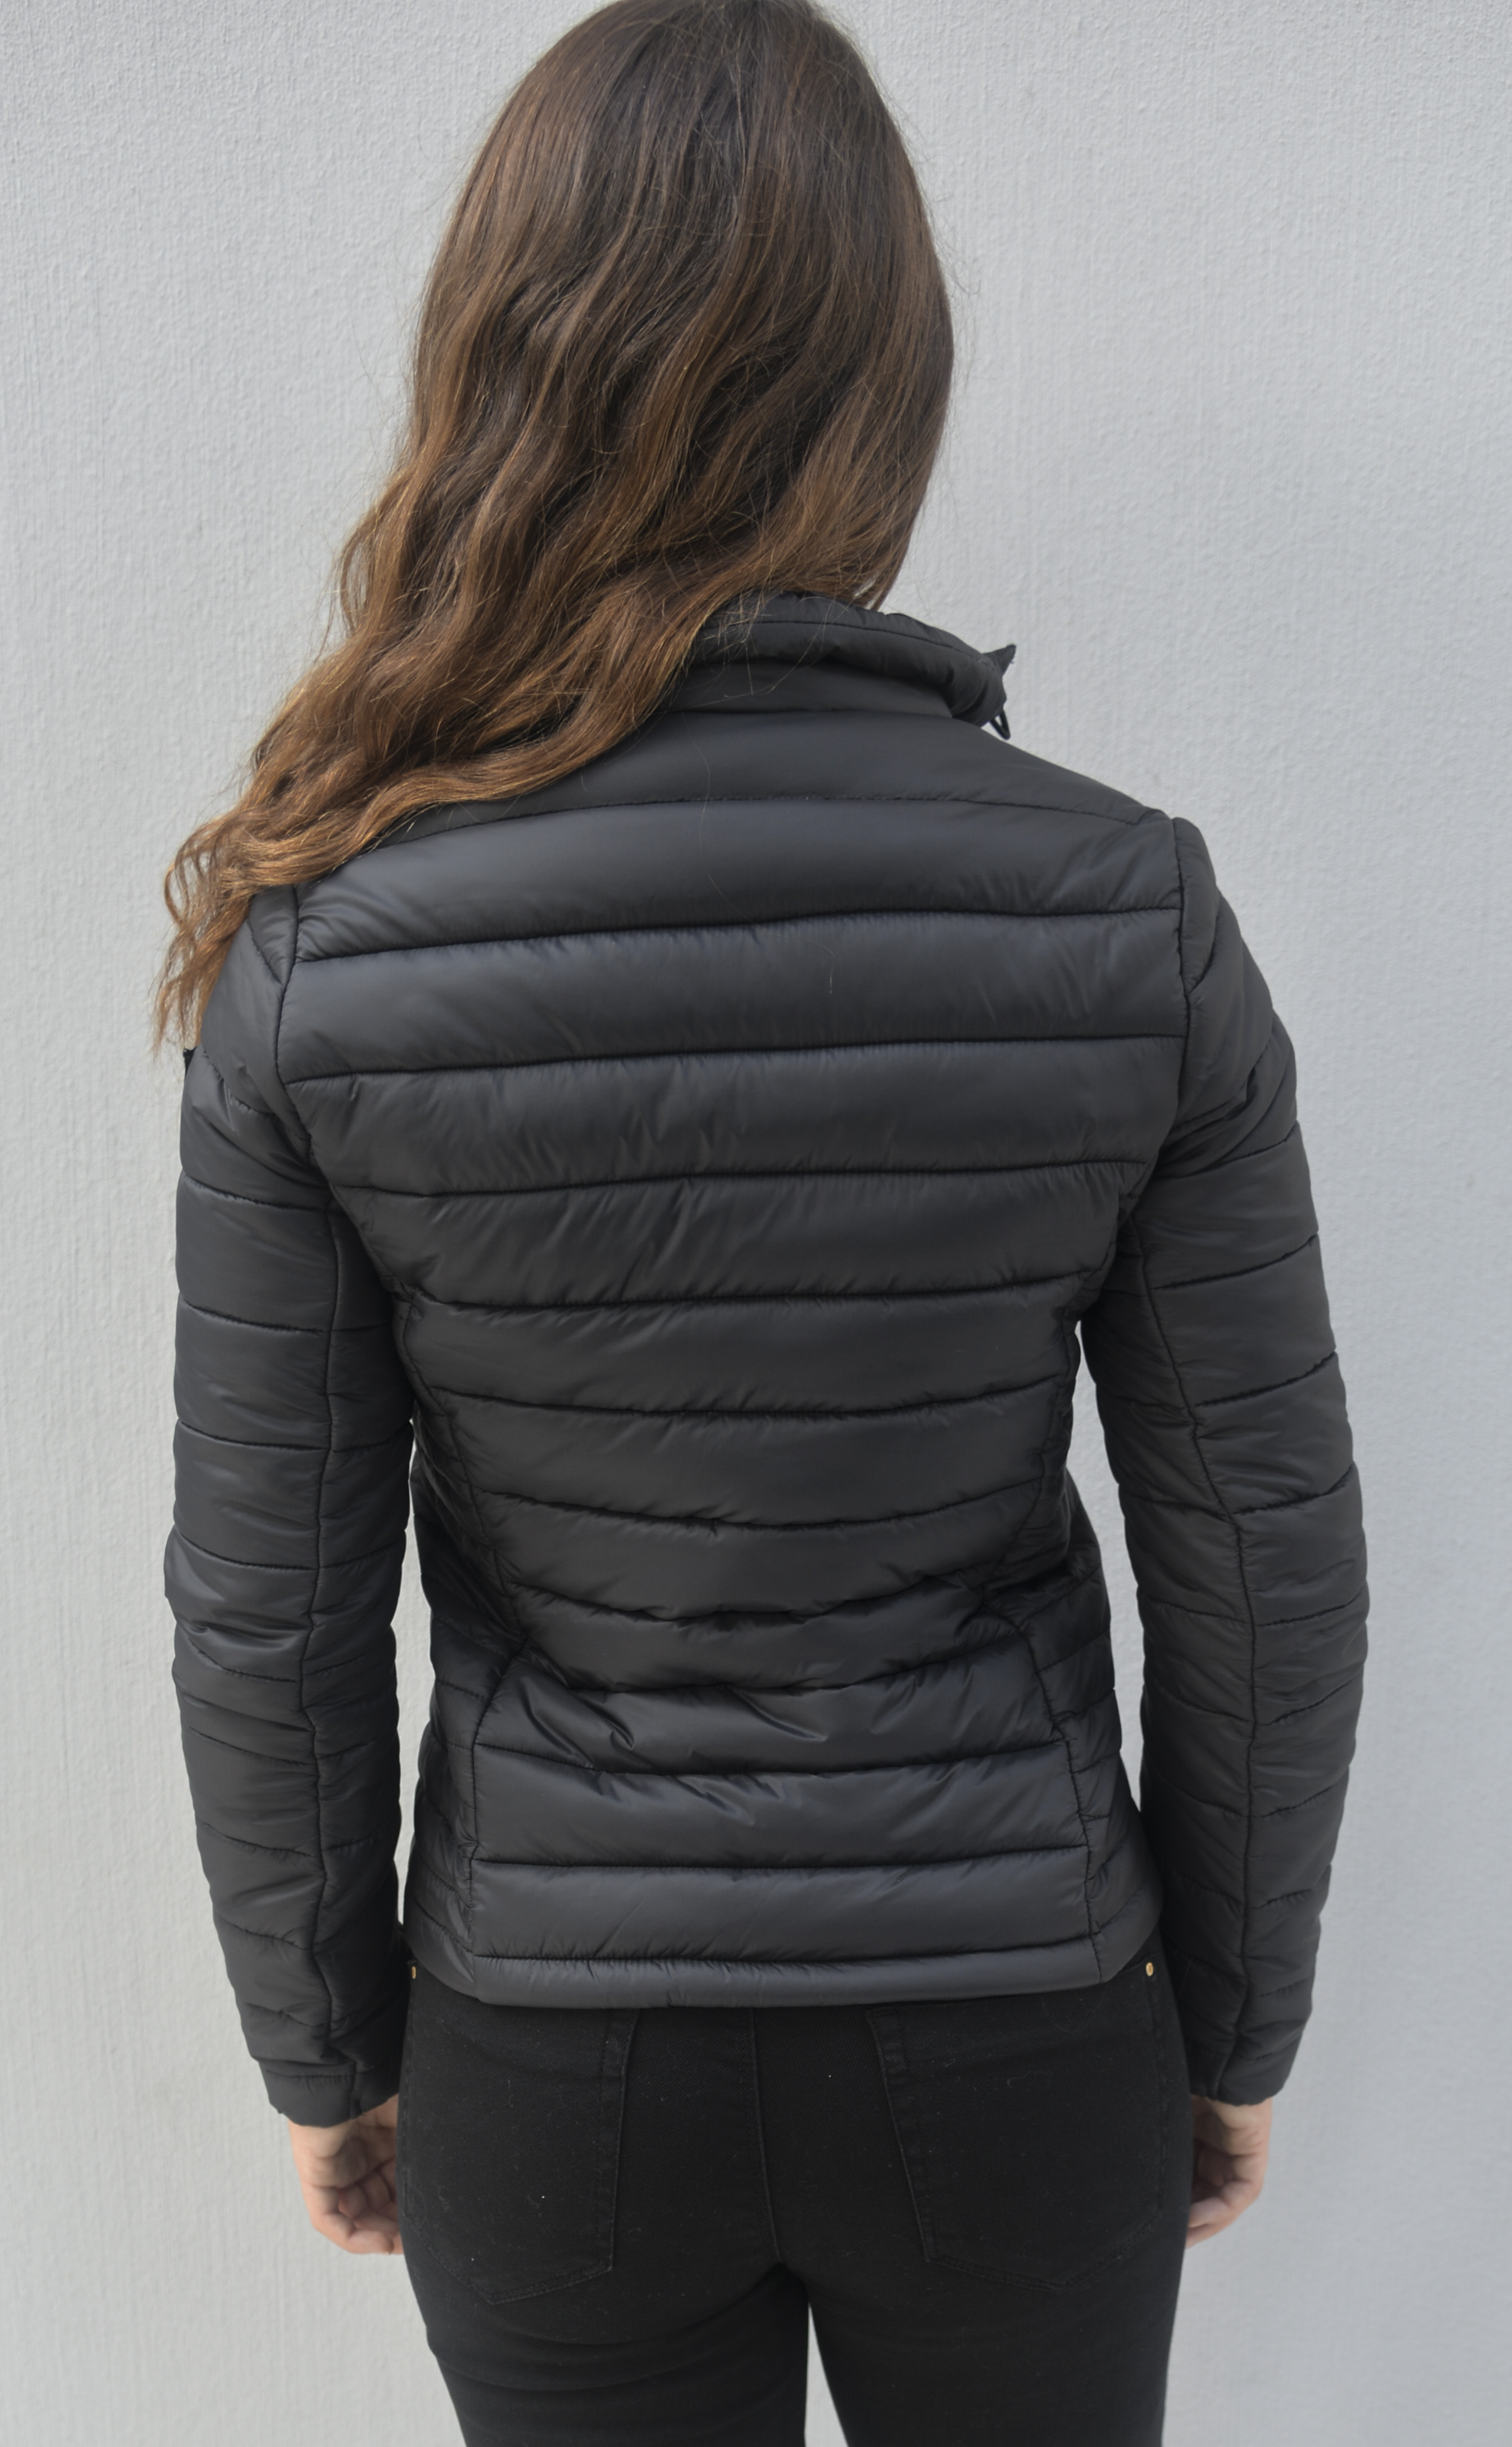 4e7b1872d Burlesque Black Short puffer Jackets without hood - » GiLo Lifestyle